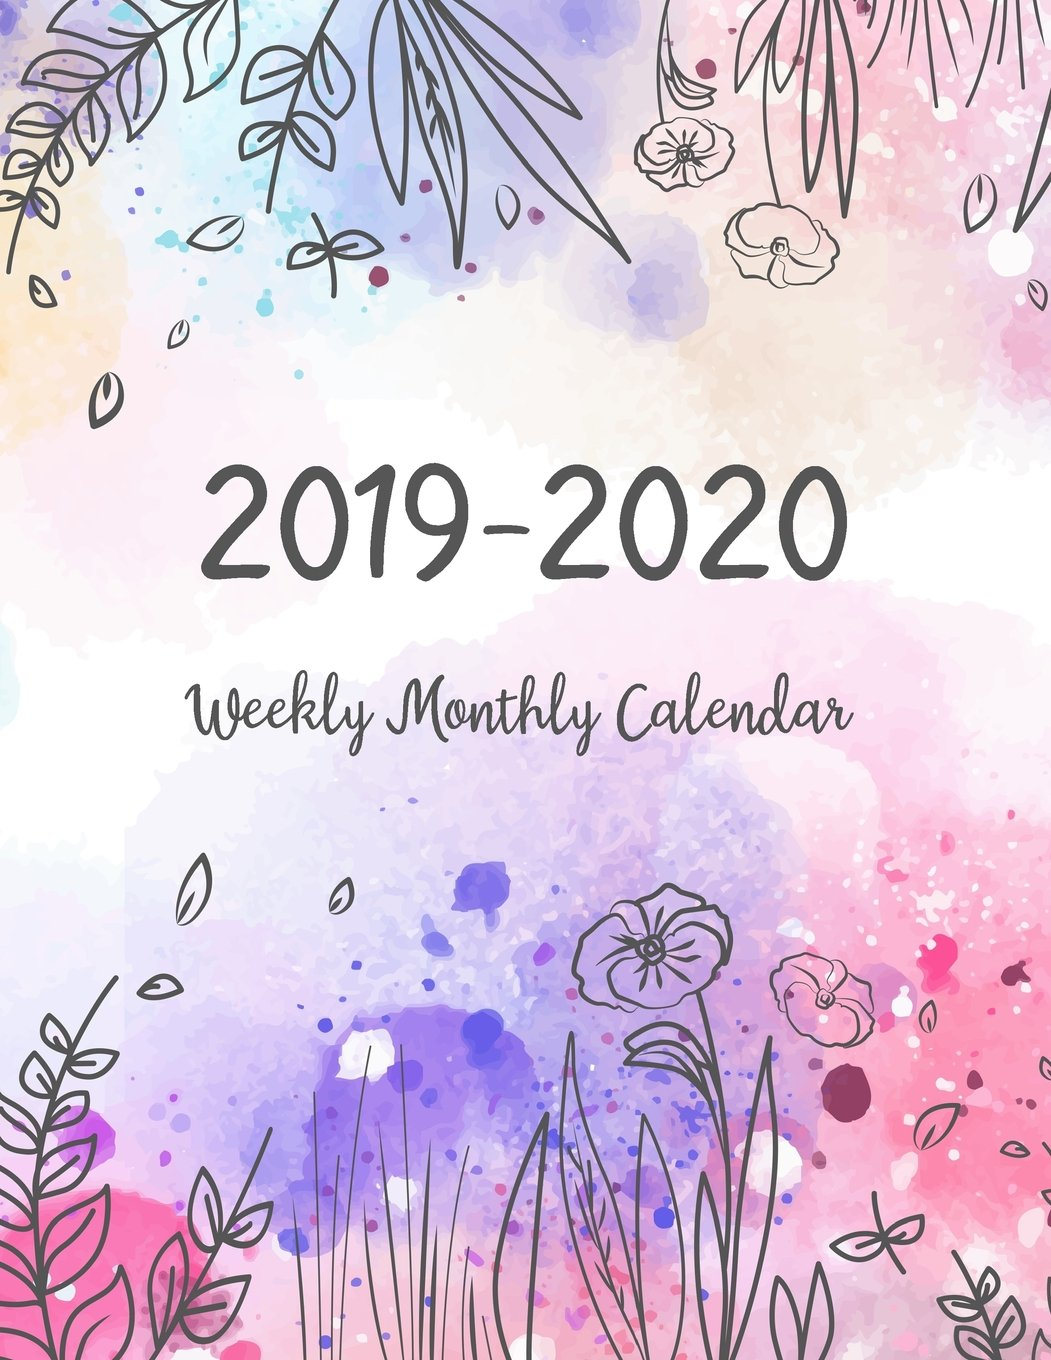 2019-2020 Weekly Monthly Calendar: Two Years - Daily Weekly